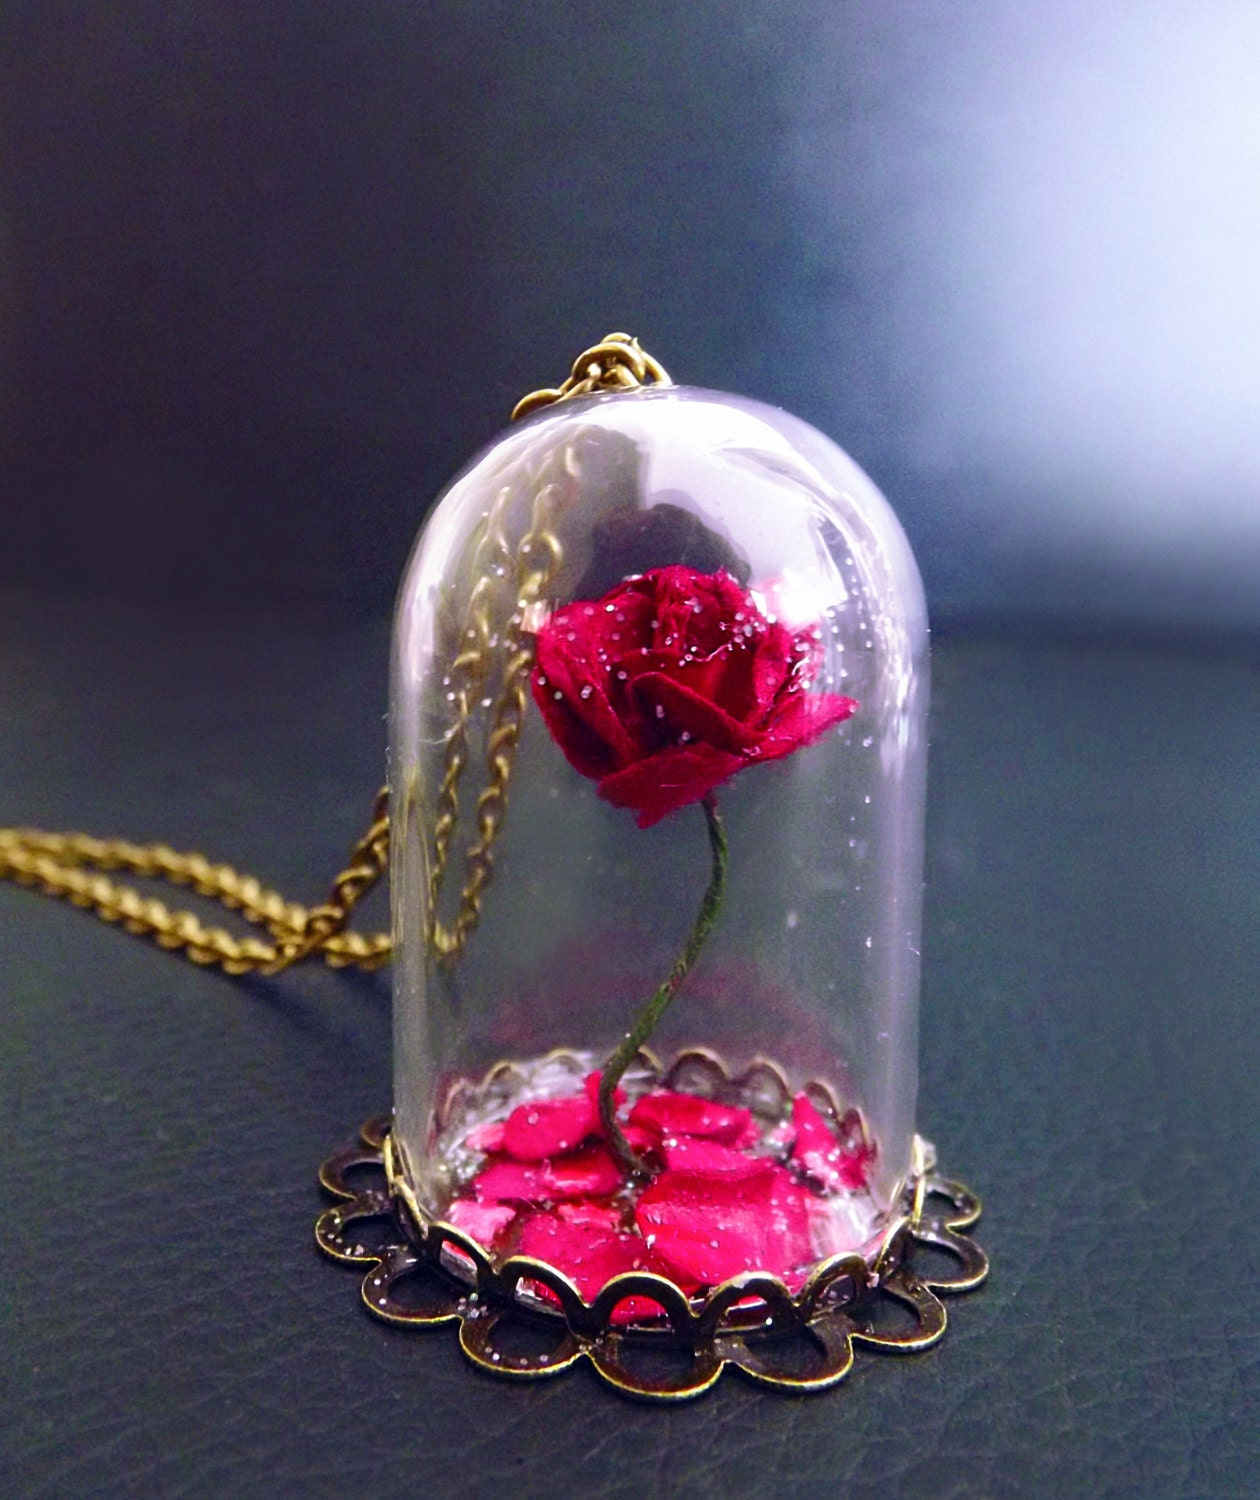 Beauty and the beast rose rose vial necklace snowglobe zoom izmirmasajfo Choice Image